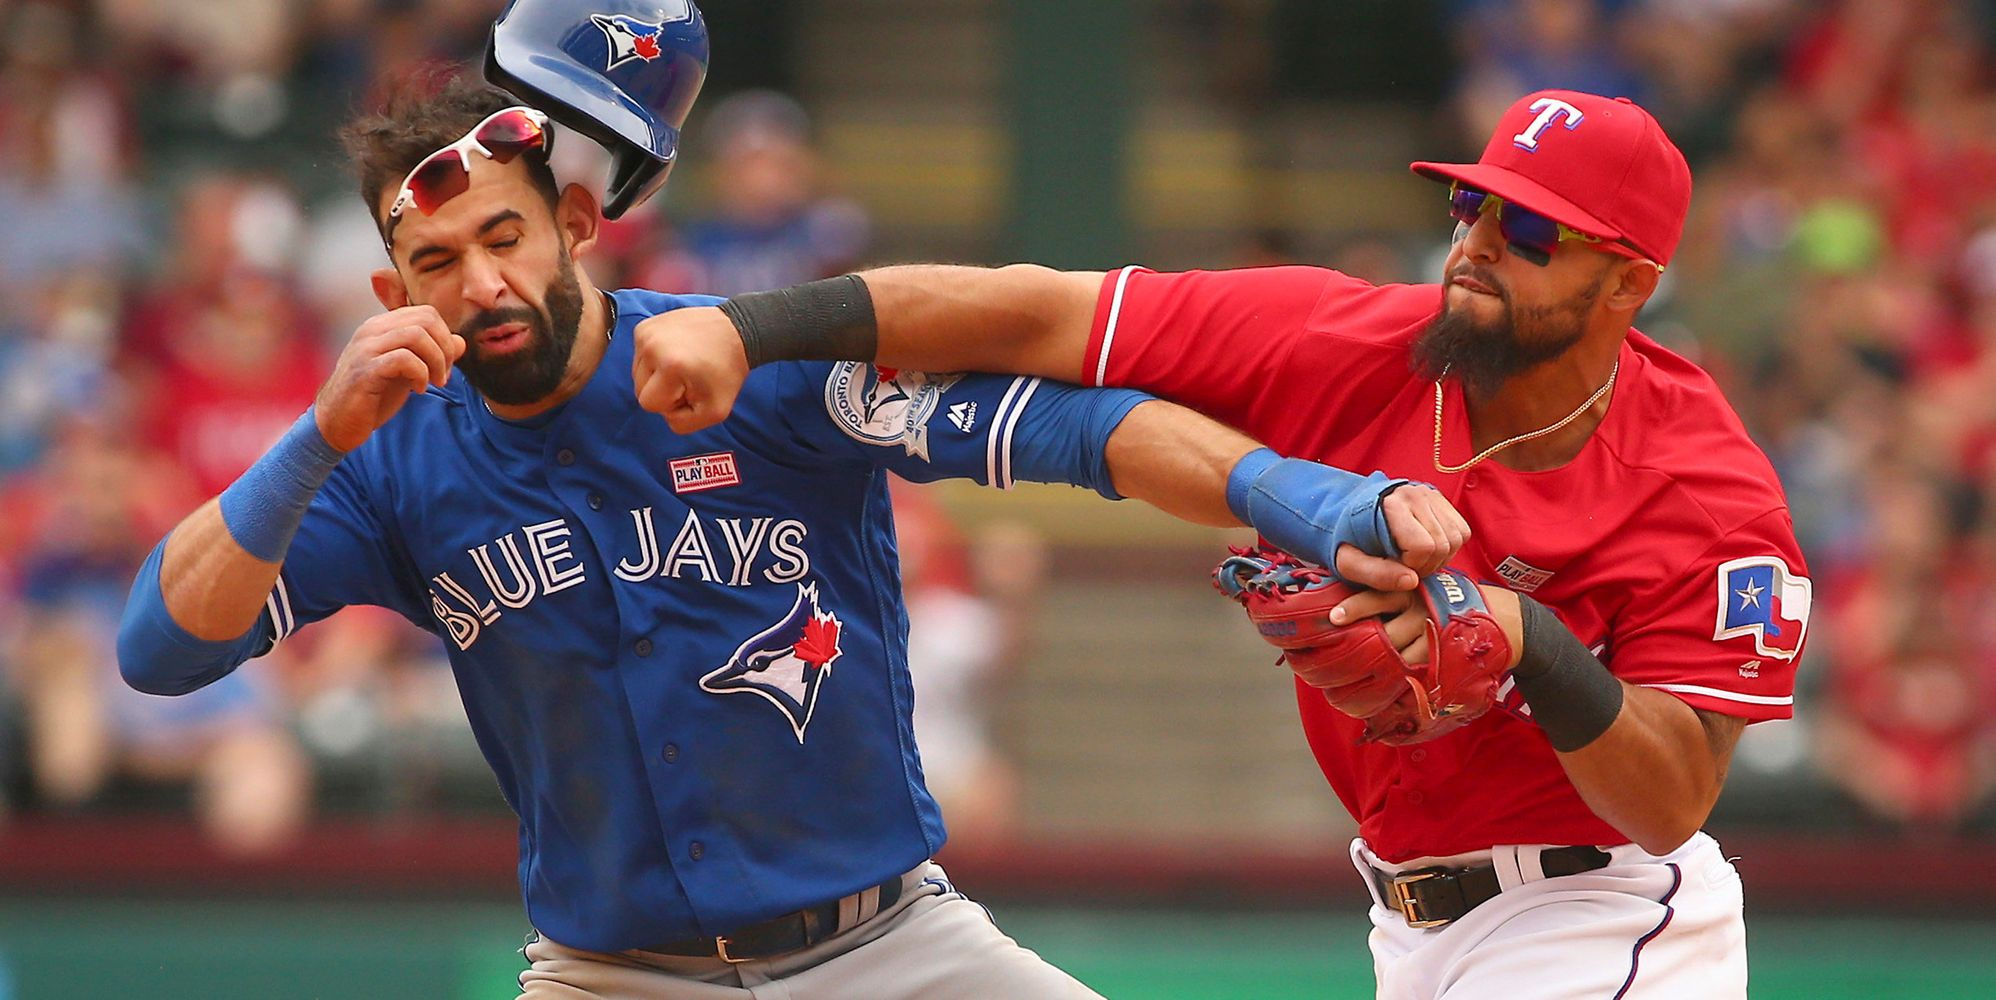 Blue Jays And Rangers Brawl After Rougned Odor Punches Jose Bautista In The Face